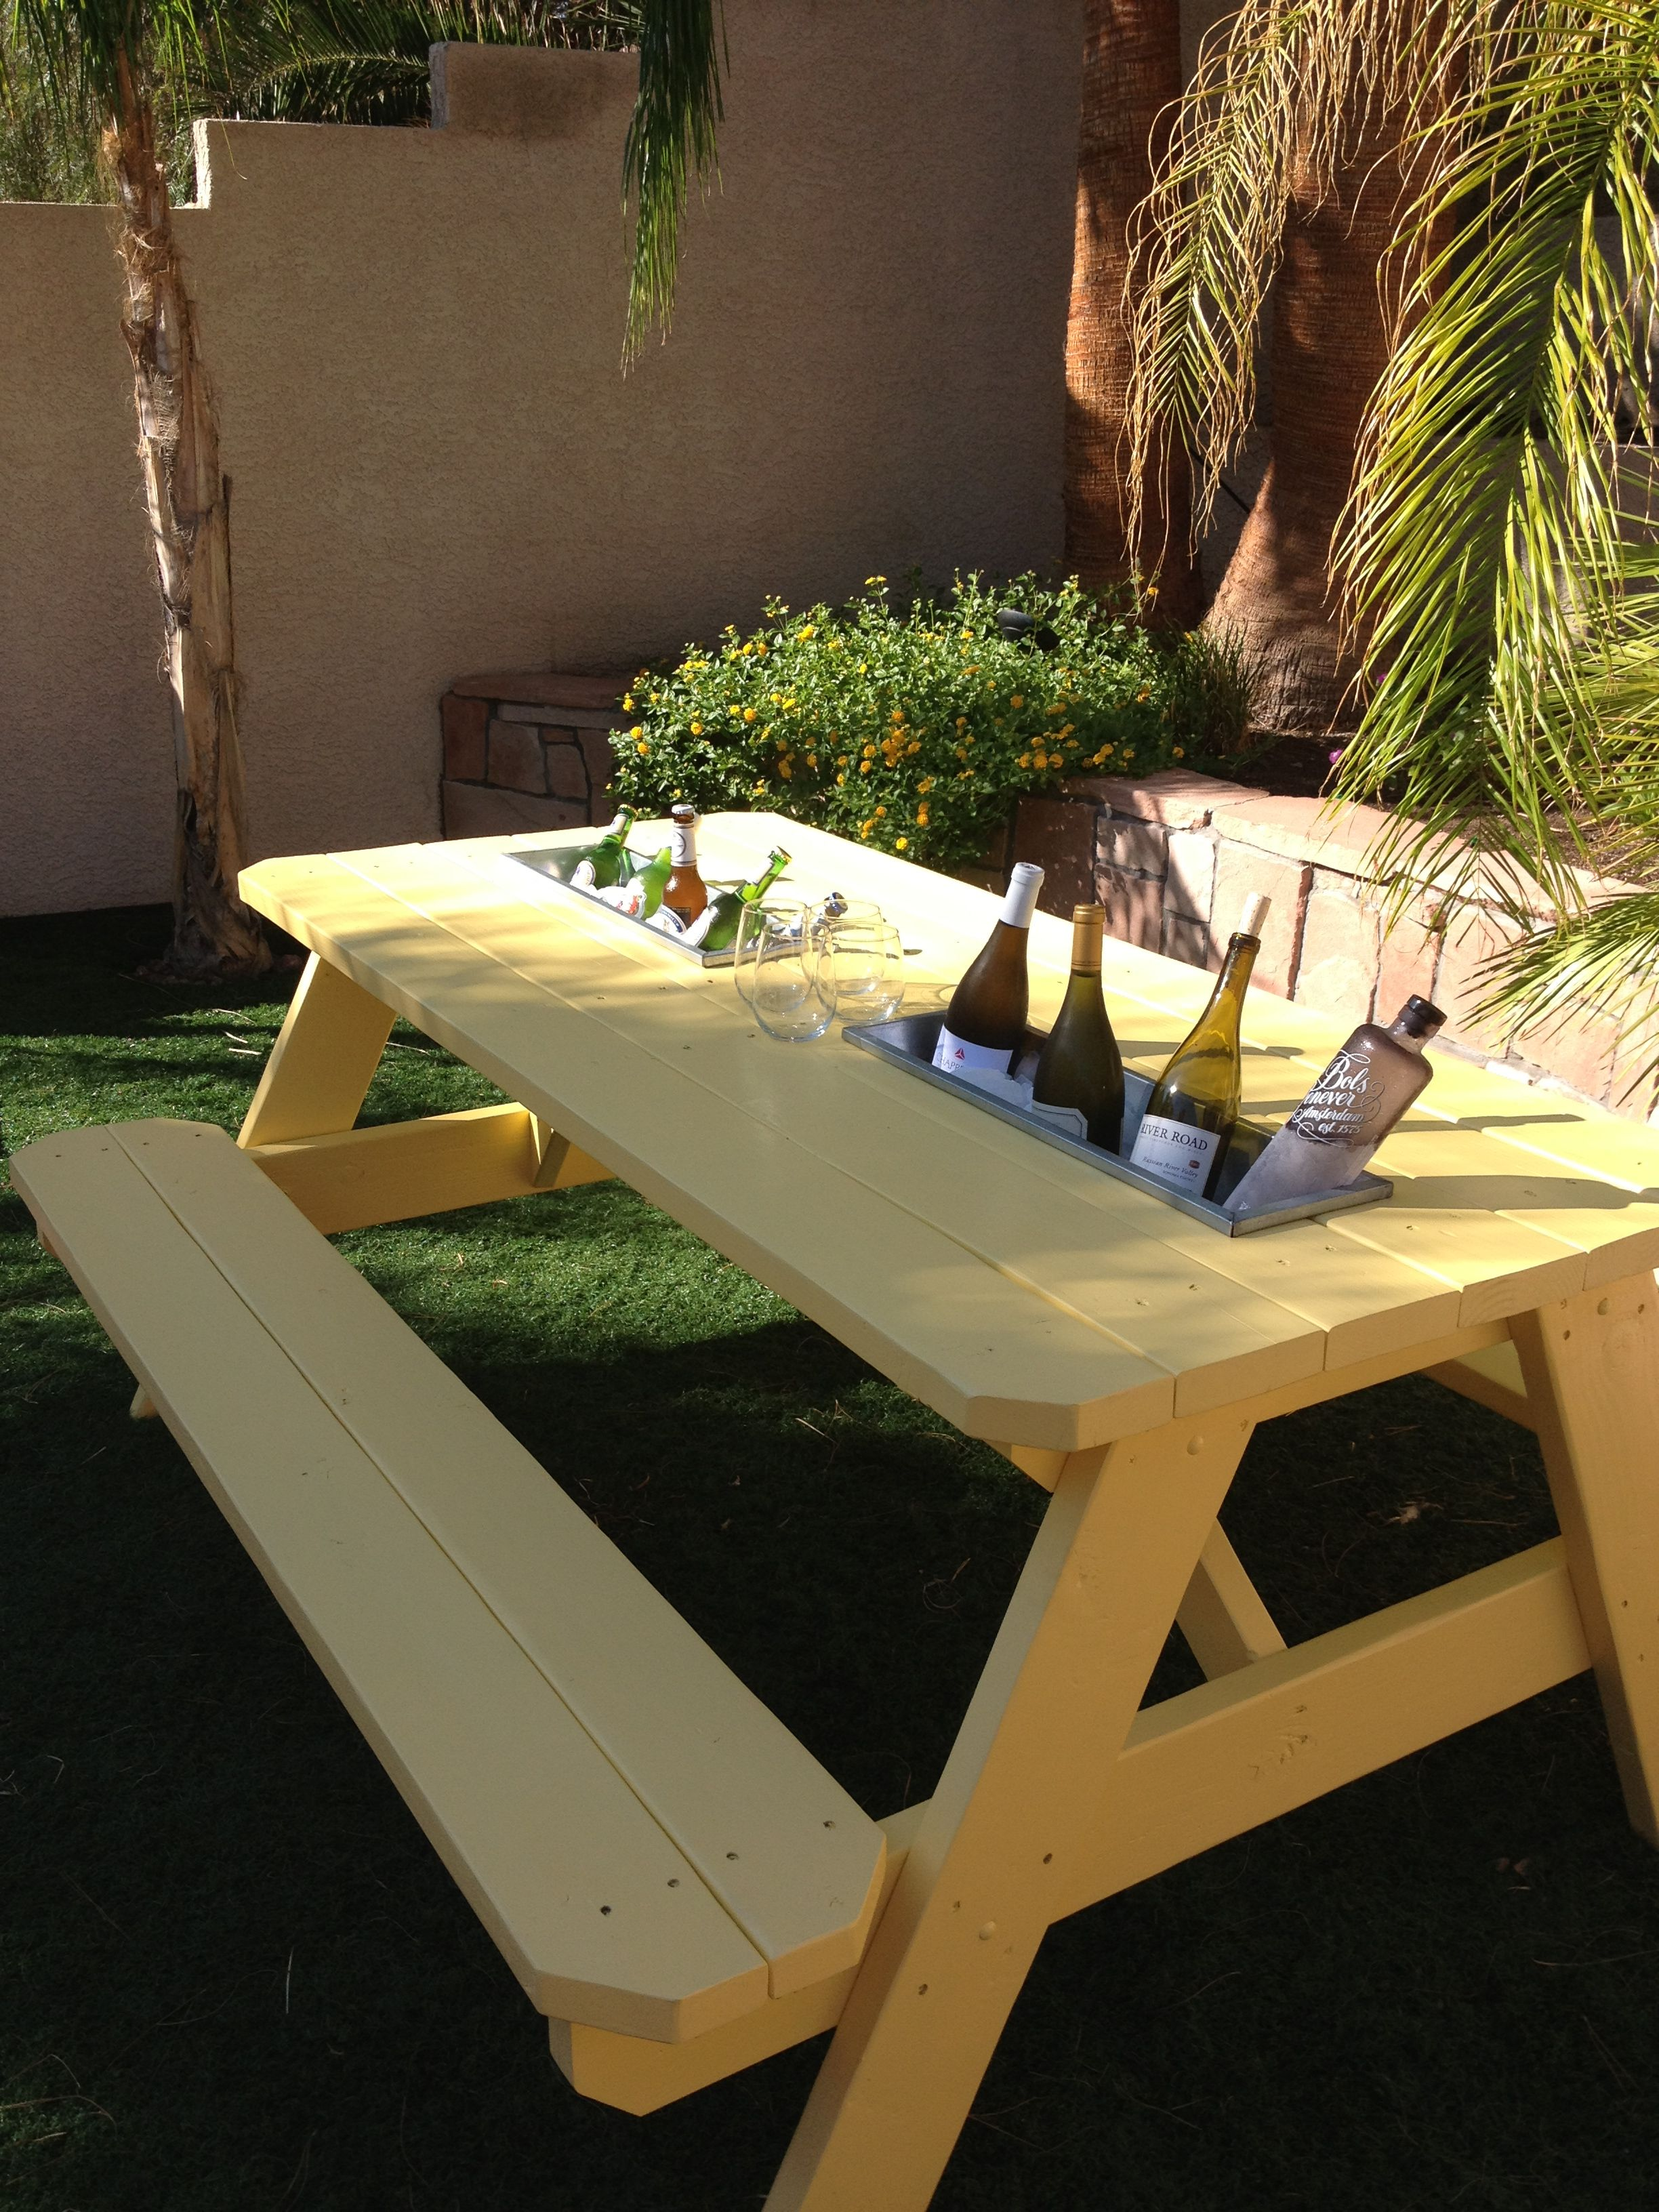 Table With Drink Trough Picnic Table Lifestyle Pinterest Picnic Tables Picnics And